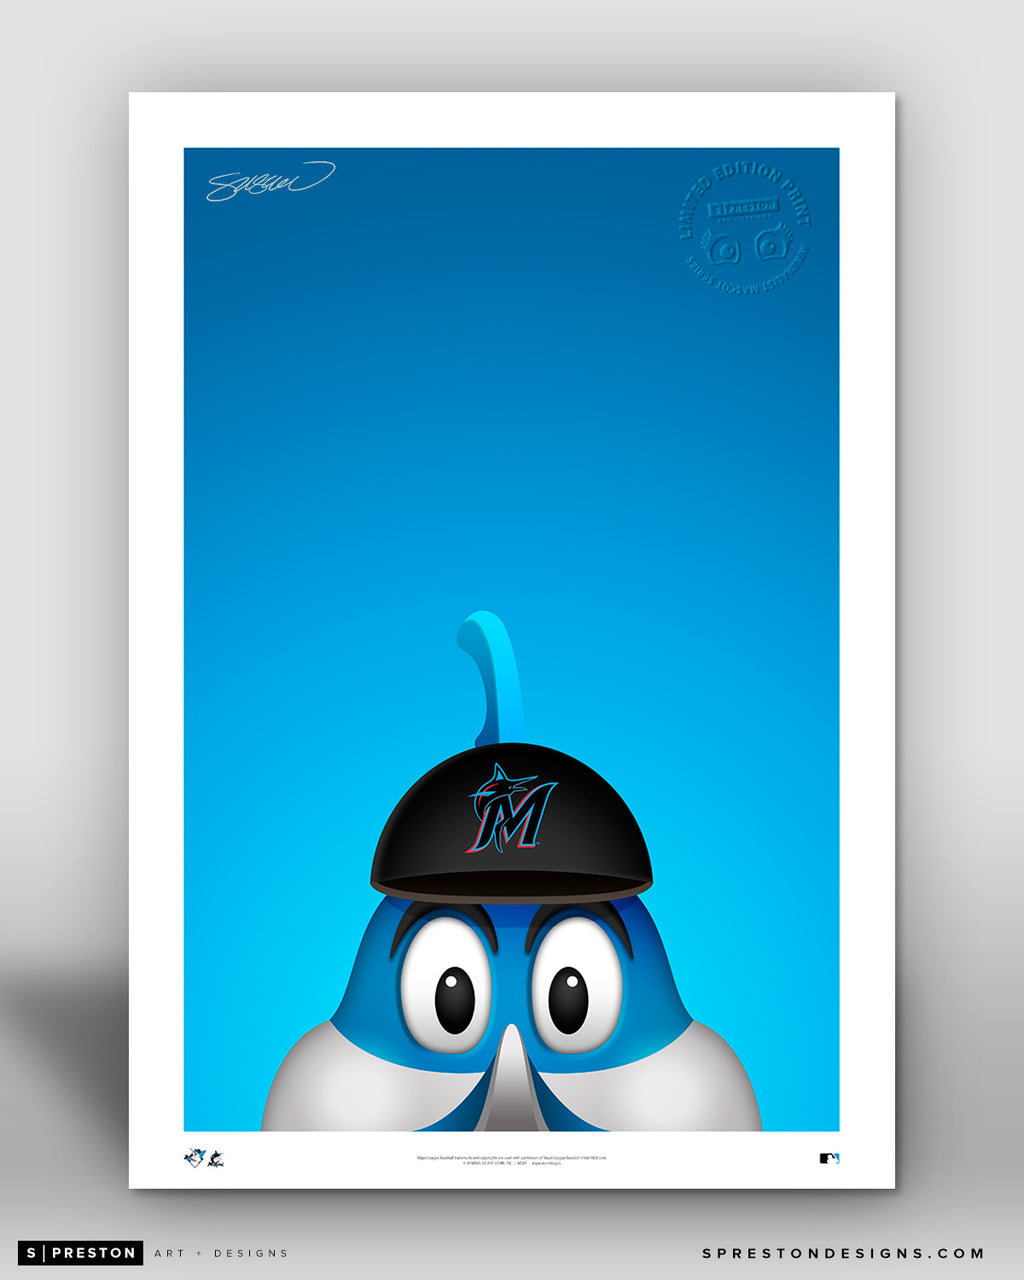 Minimalist Billy The Marlin - Miami Marlins - S. Preston